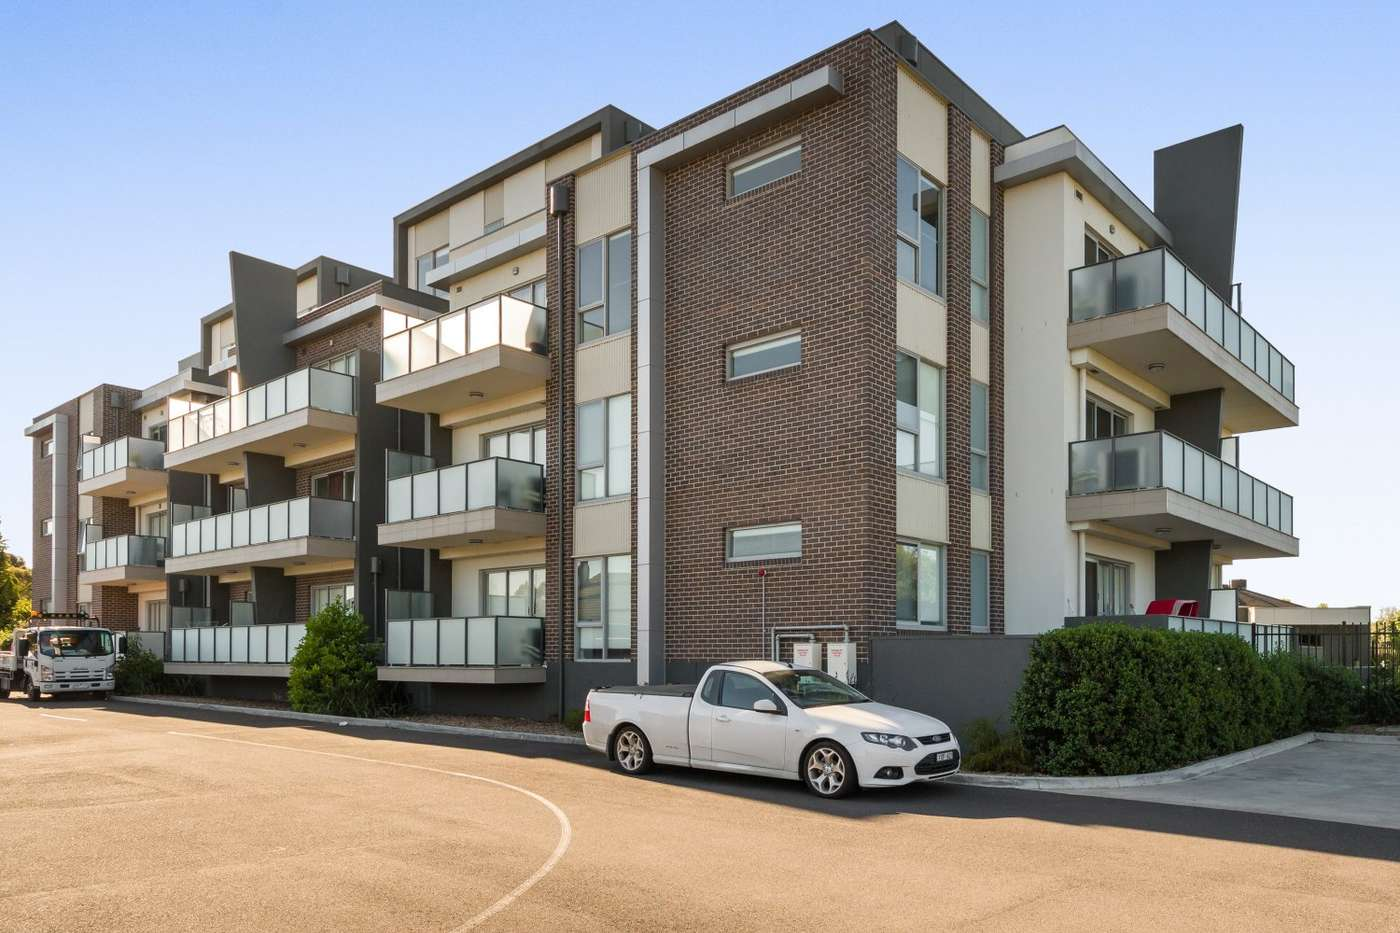 Main view of Homely apartment listing, 436 Stud Road, Wantirna South, VIC 3152